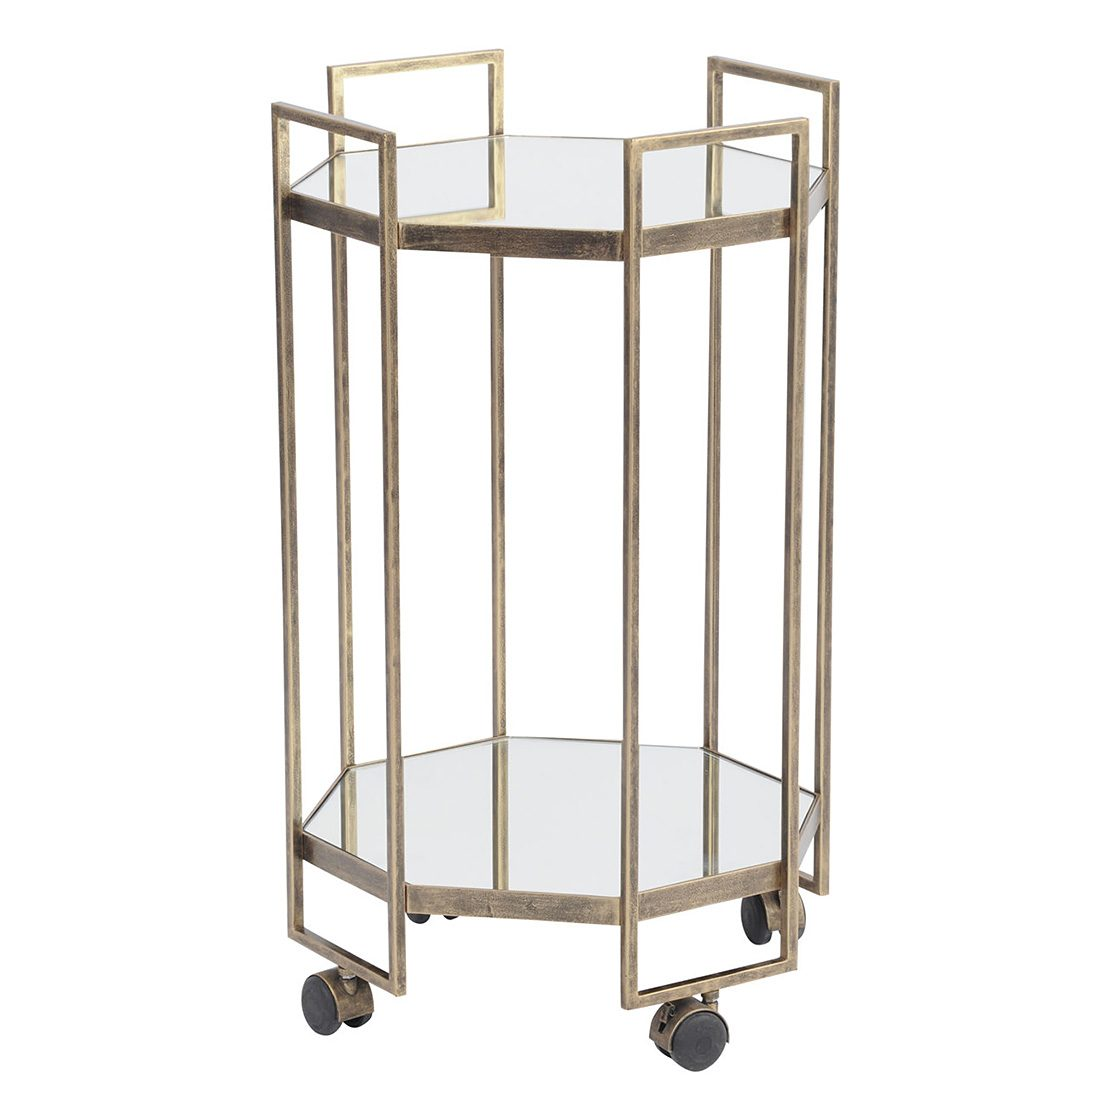 Art Deco Style & Light Antique Gold Octagonal Drinks Trolley